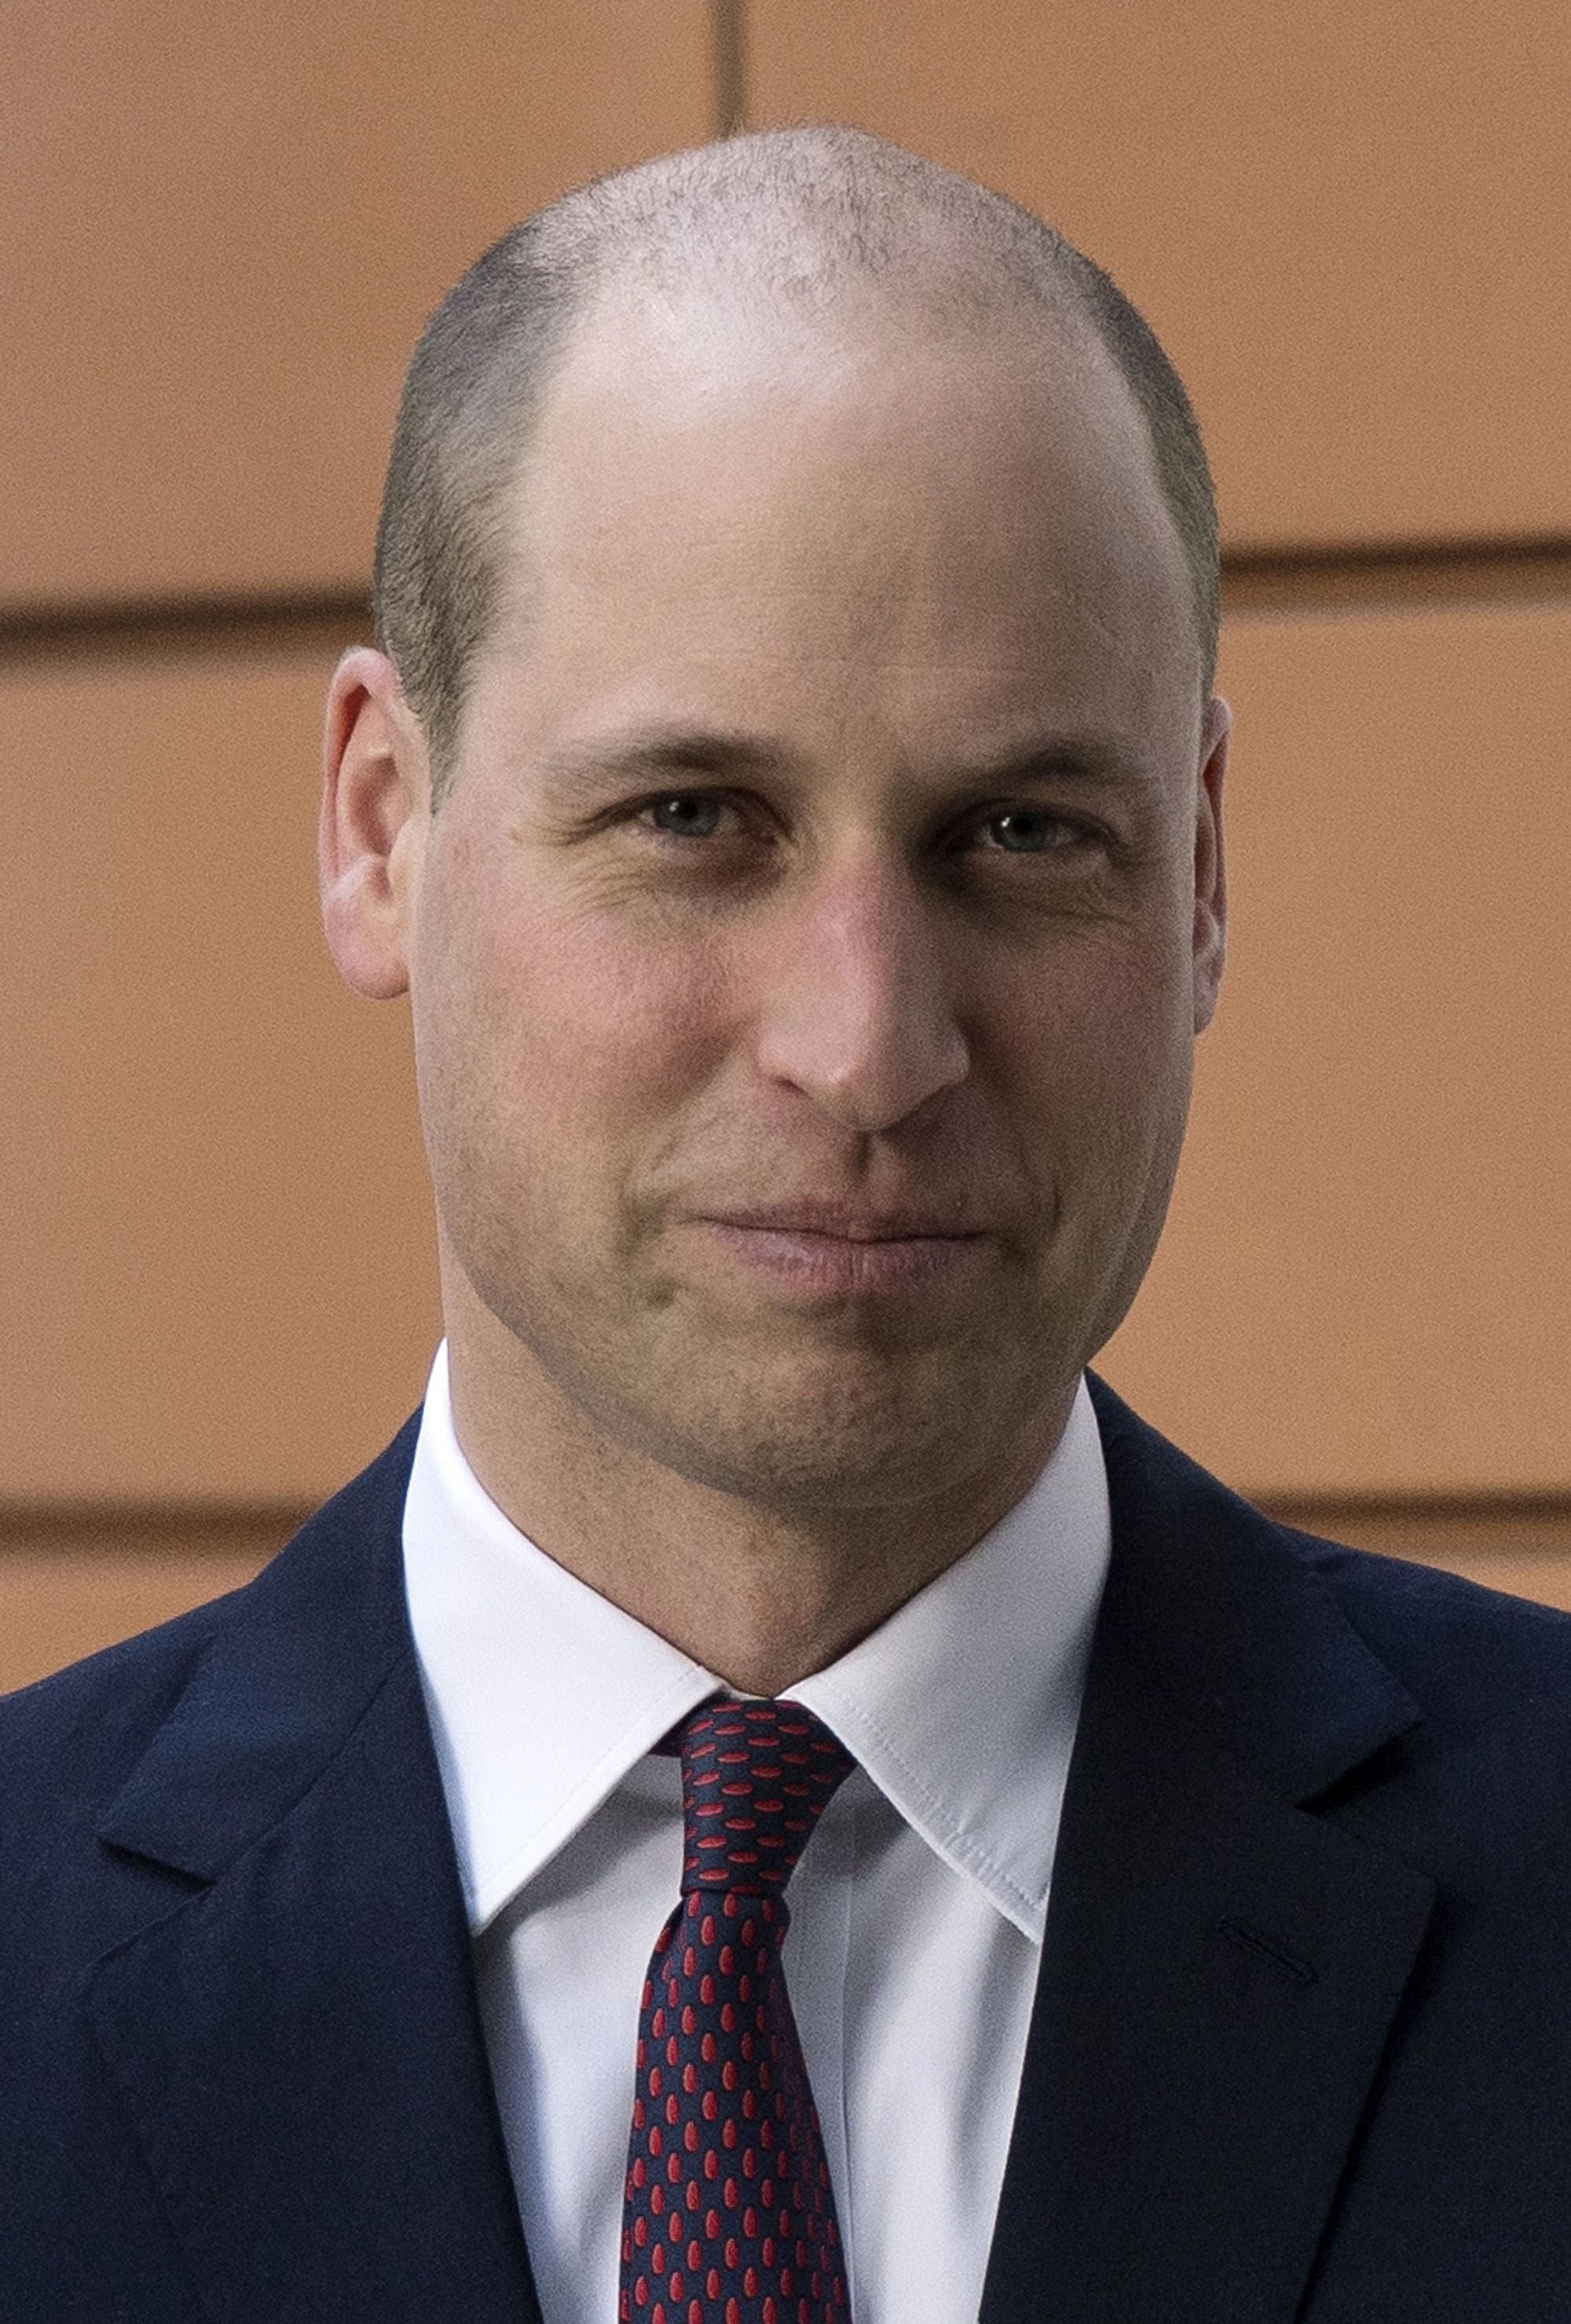 prince william with shaved head buzz cut